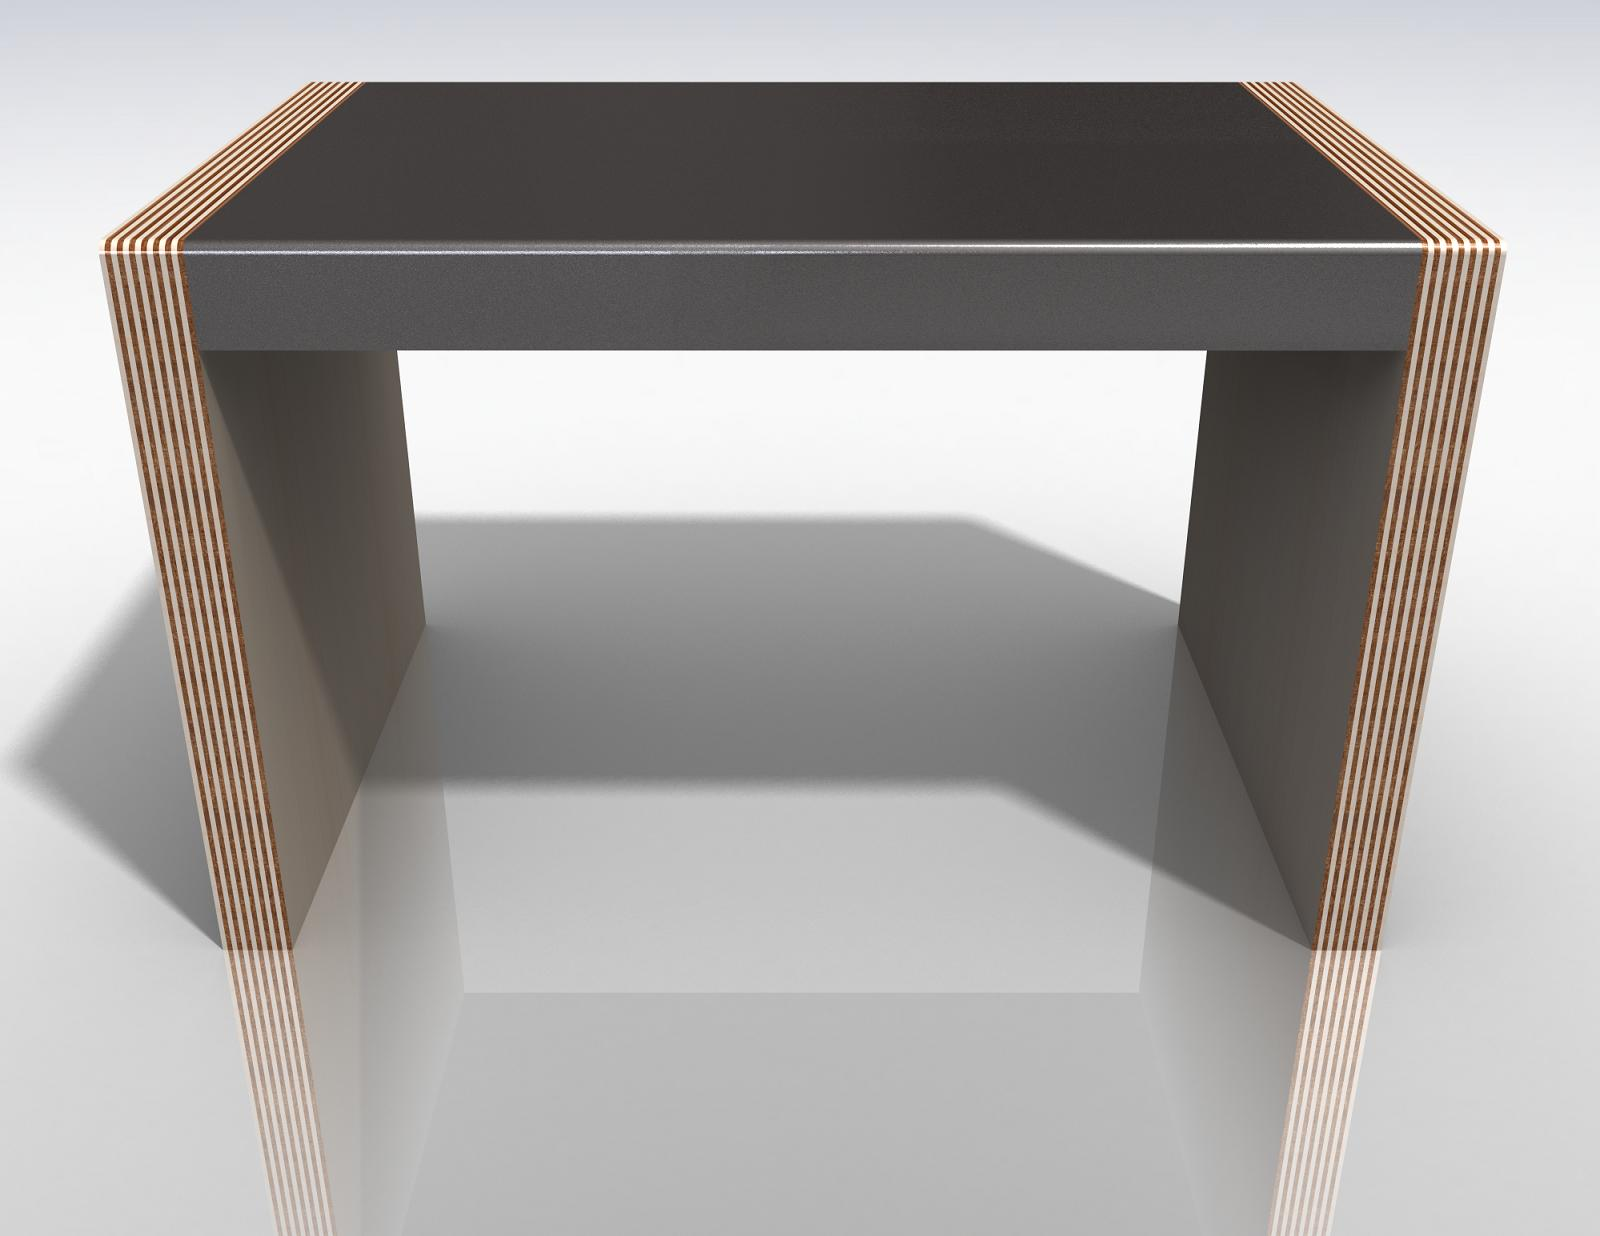 night stand front rendering